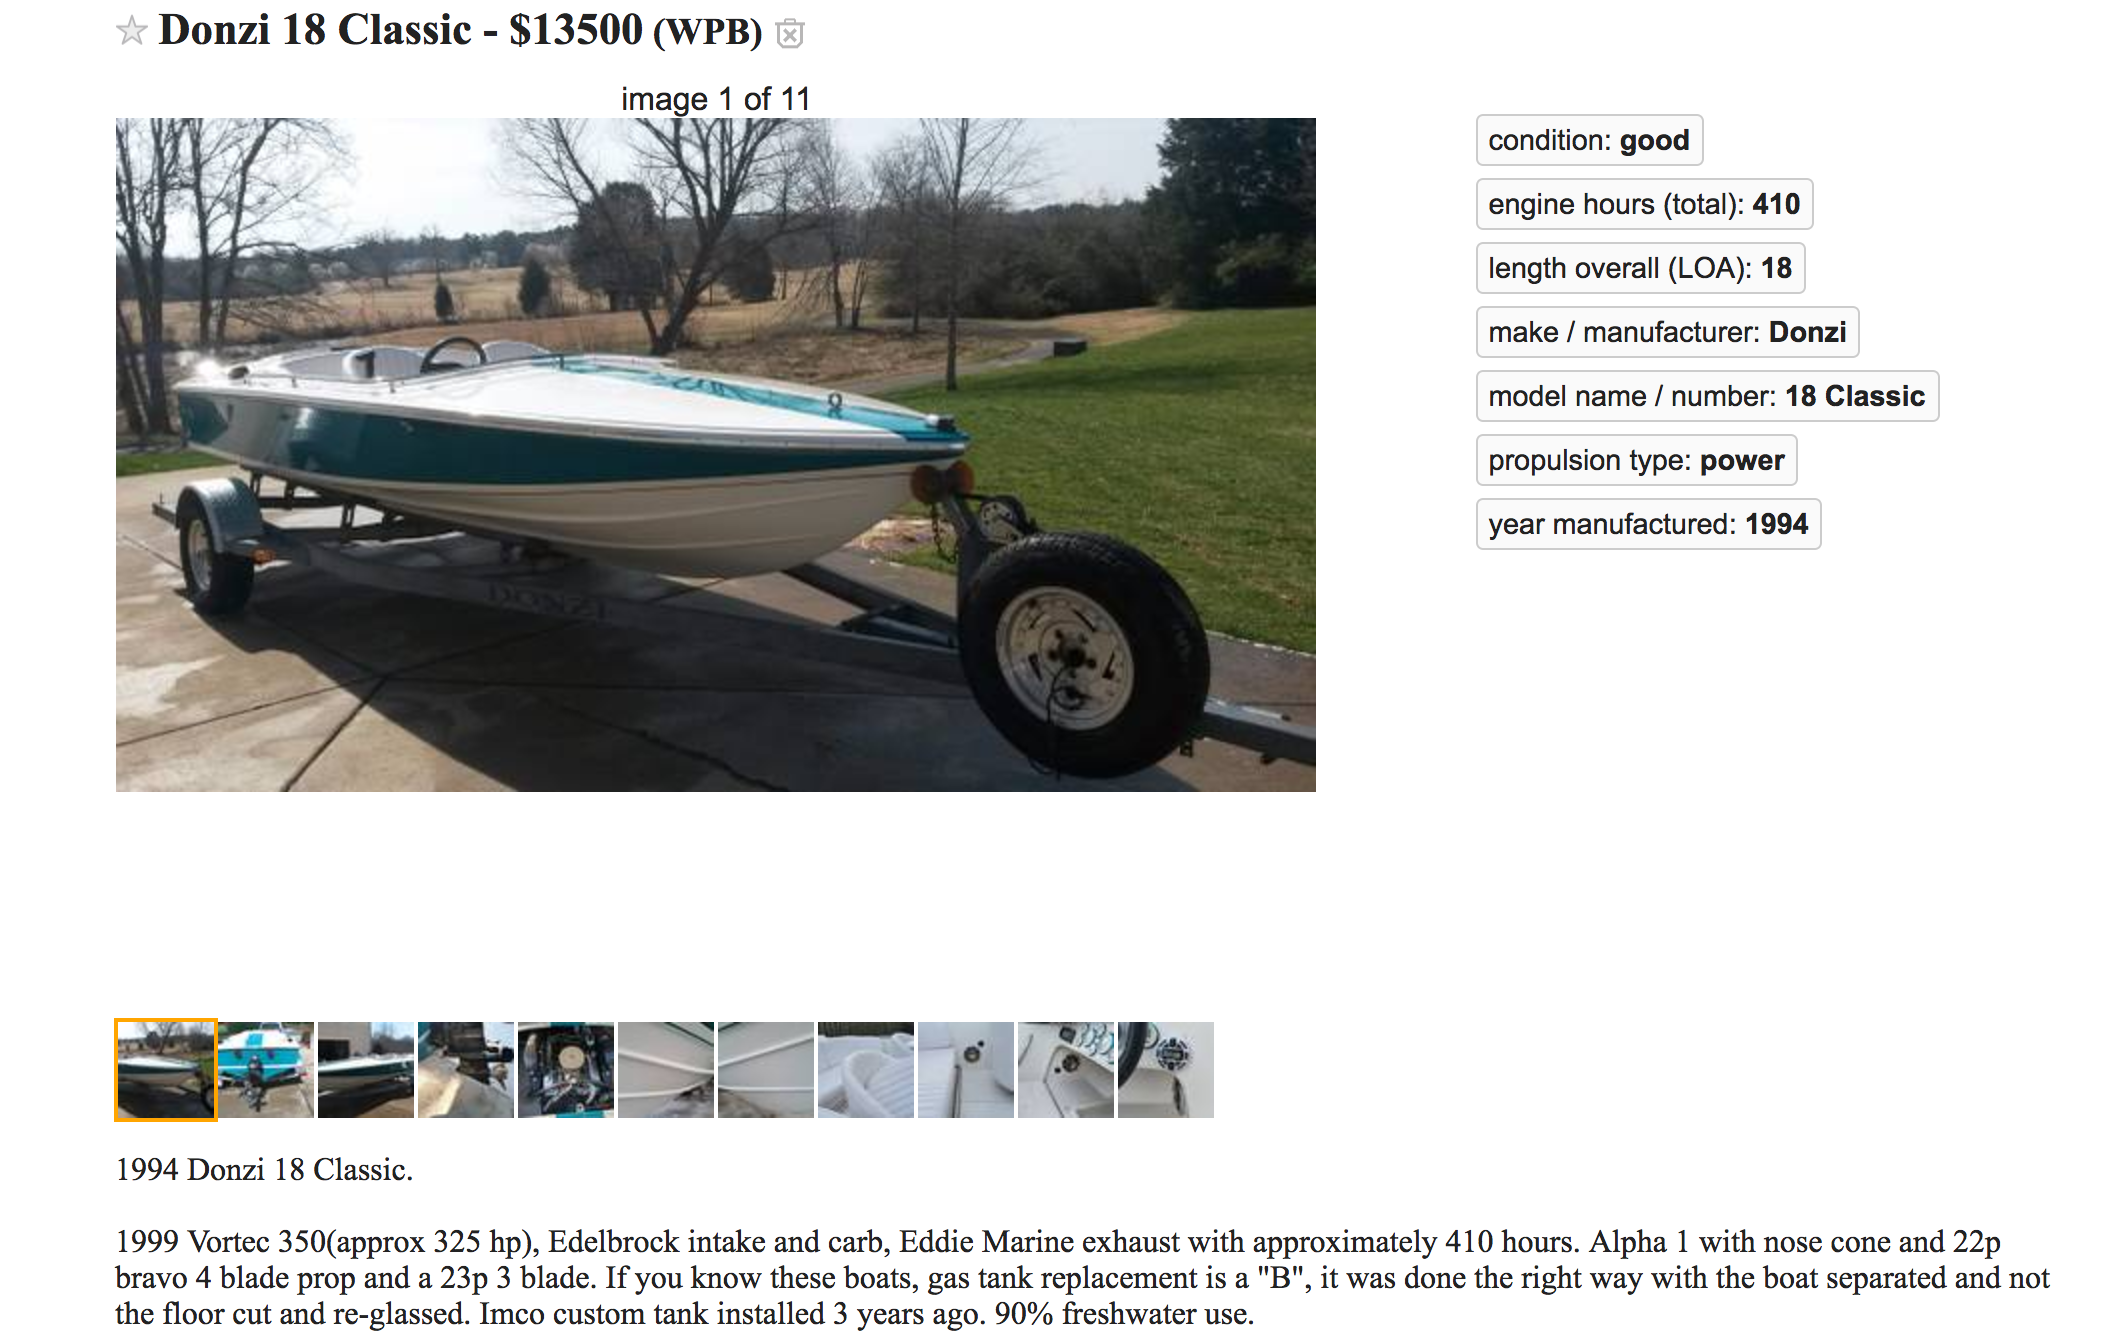 Value - Donzi's are popular and they have brand cache but this is 23 years old, had the hull and deck separated for repair and has an old carb engine, Alpha drive. What's it worth?